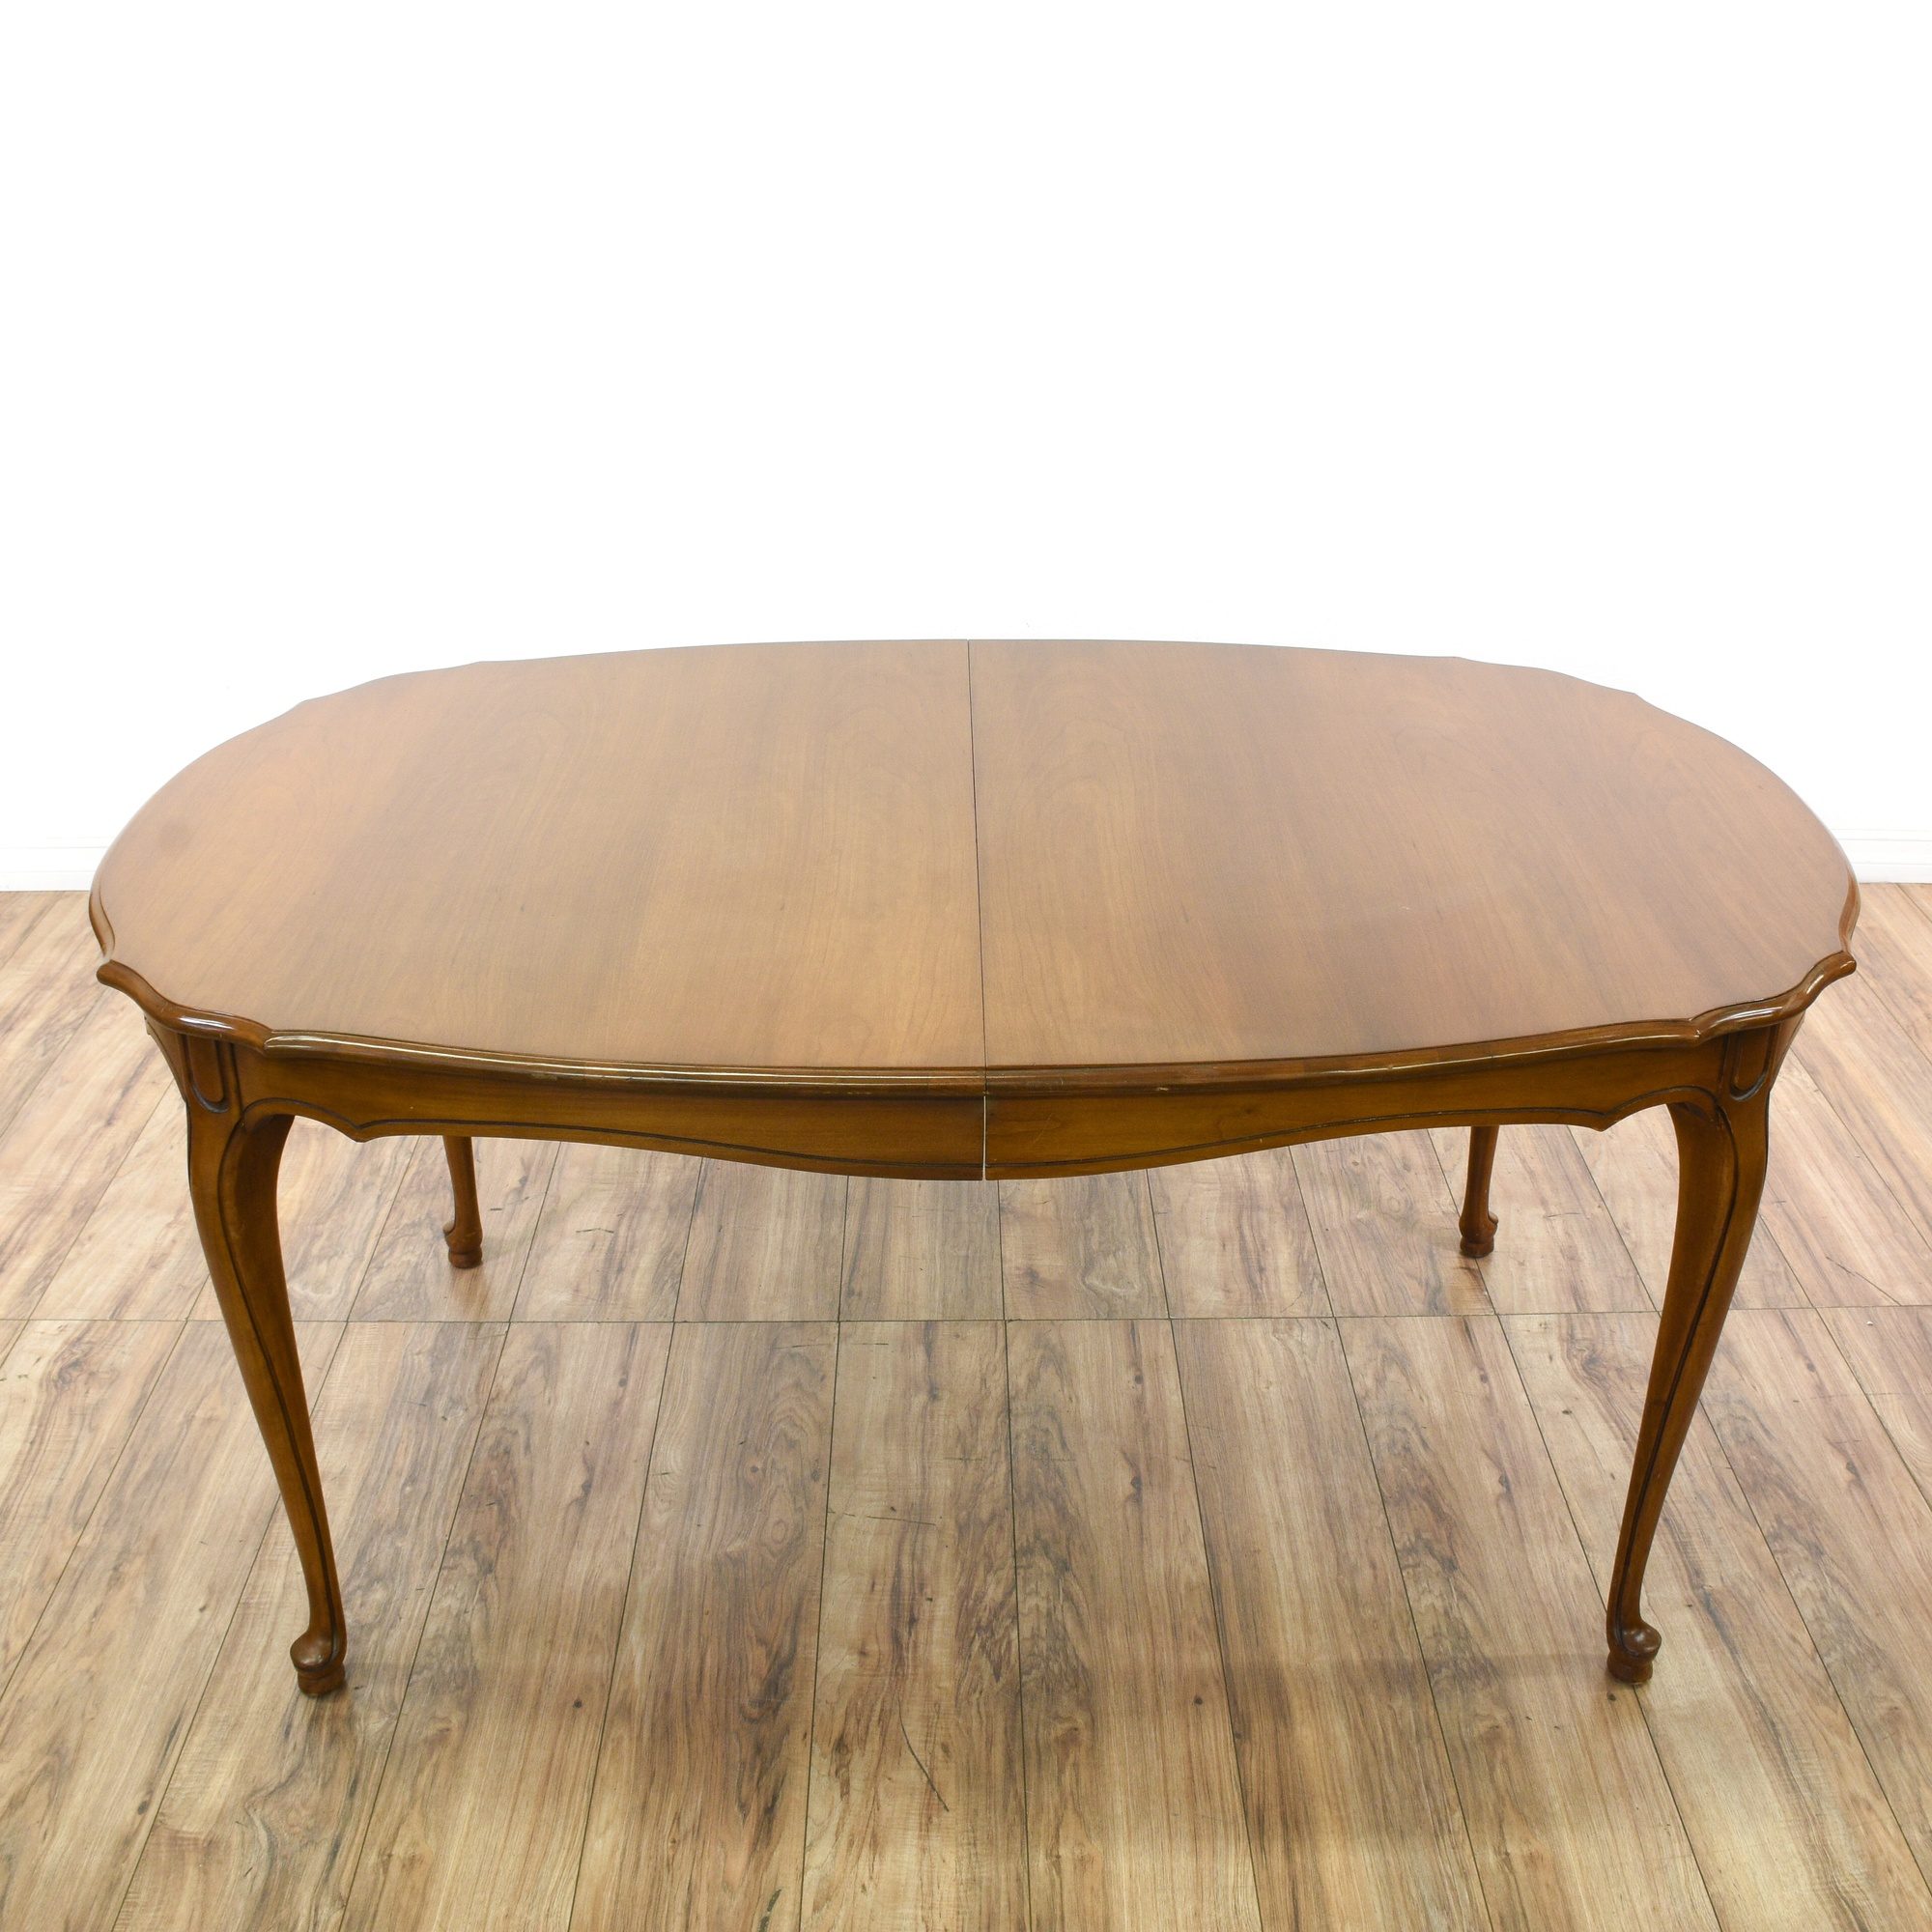 R way french provincial dining table loveseat vintage for R way dining room furniture